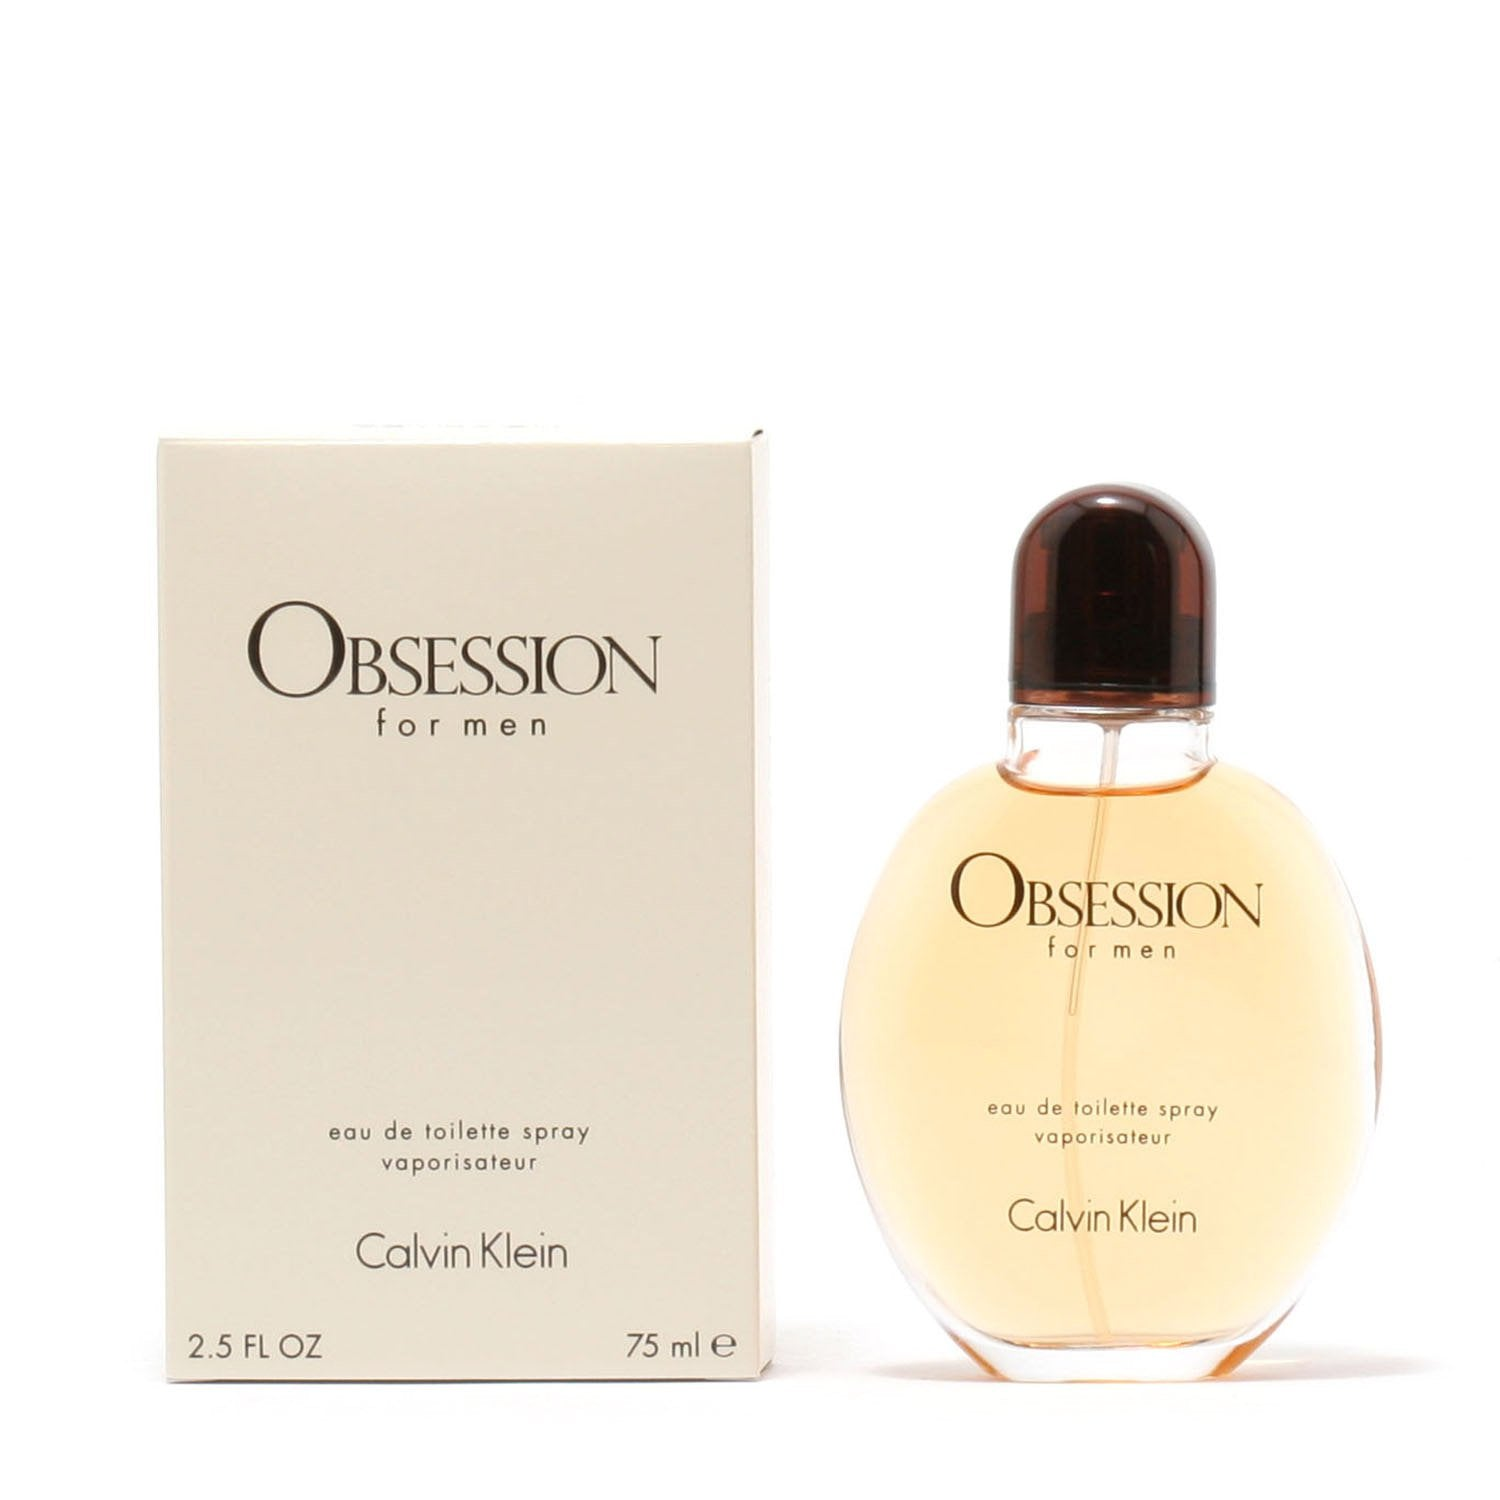 Cologne - OBSESSION FOR MEN BY CALVIN KLEIN - EAU DE TOILETTE SPRAY